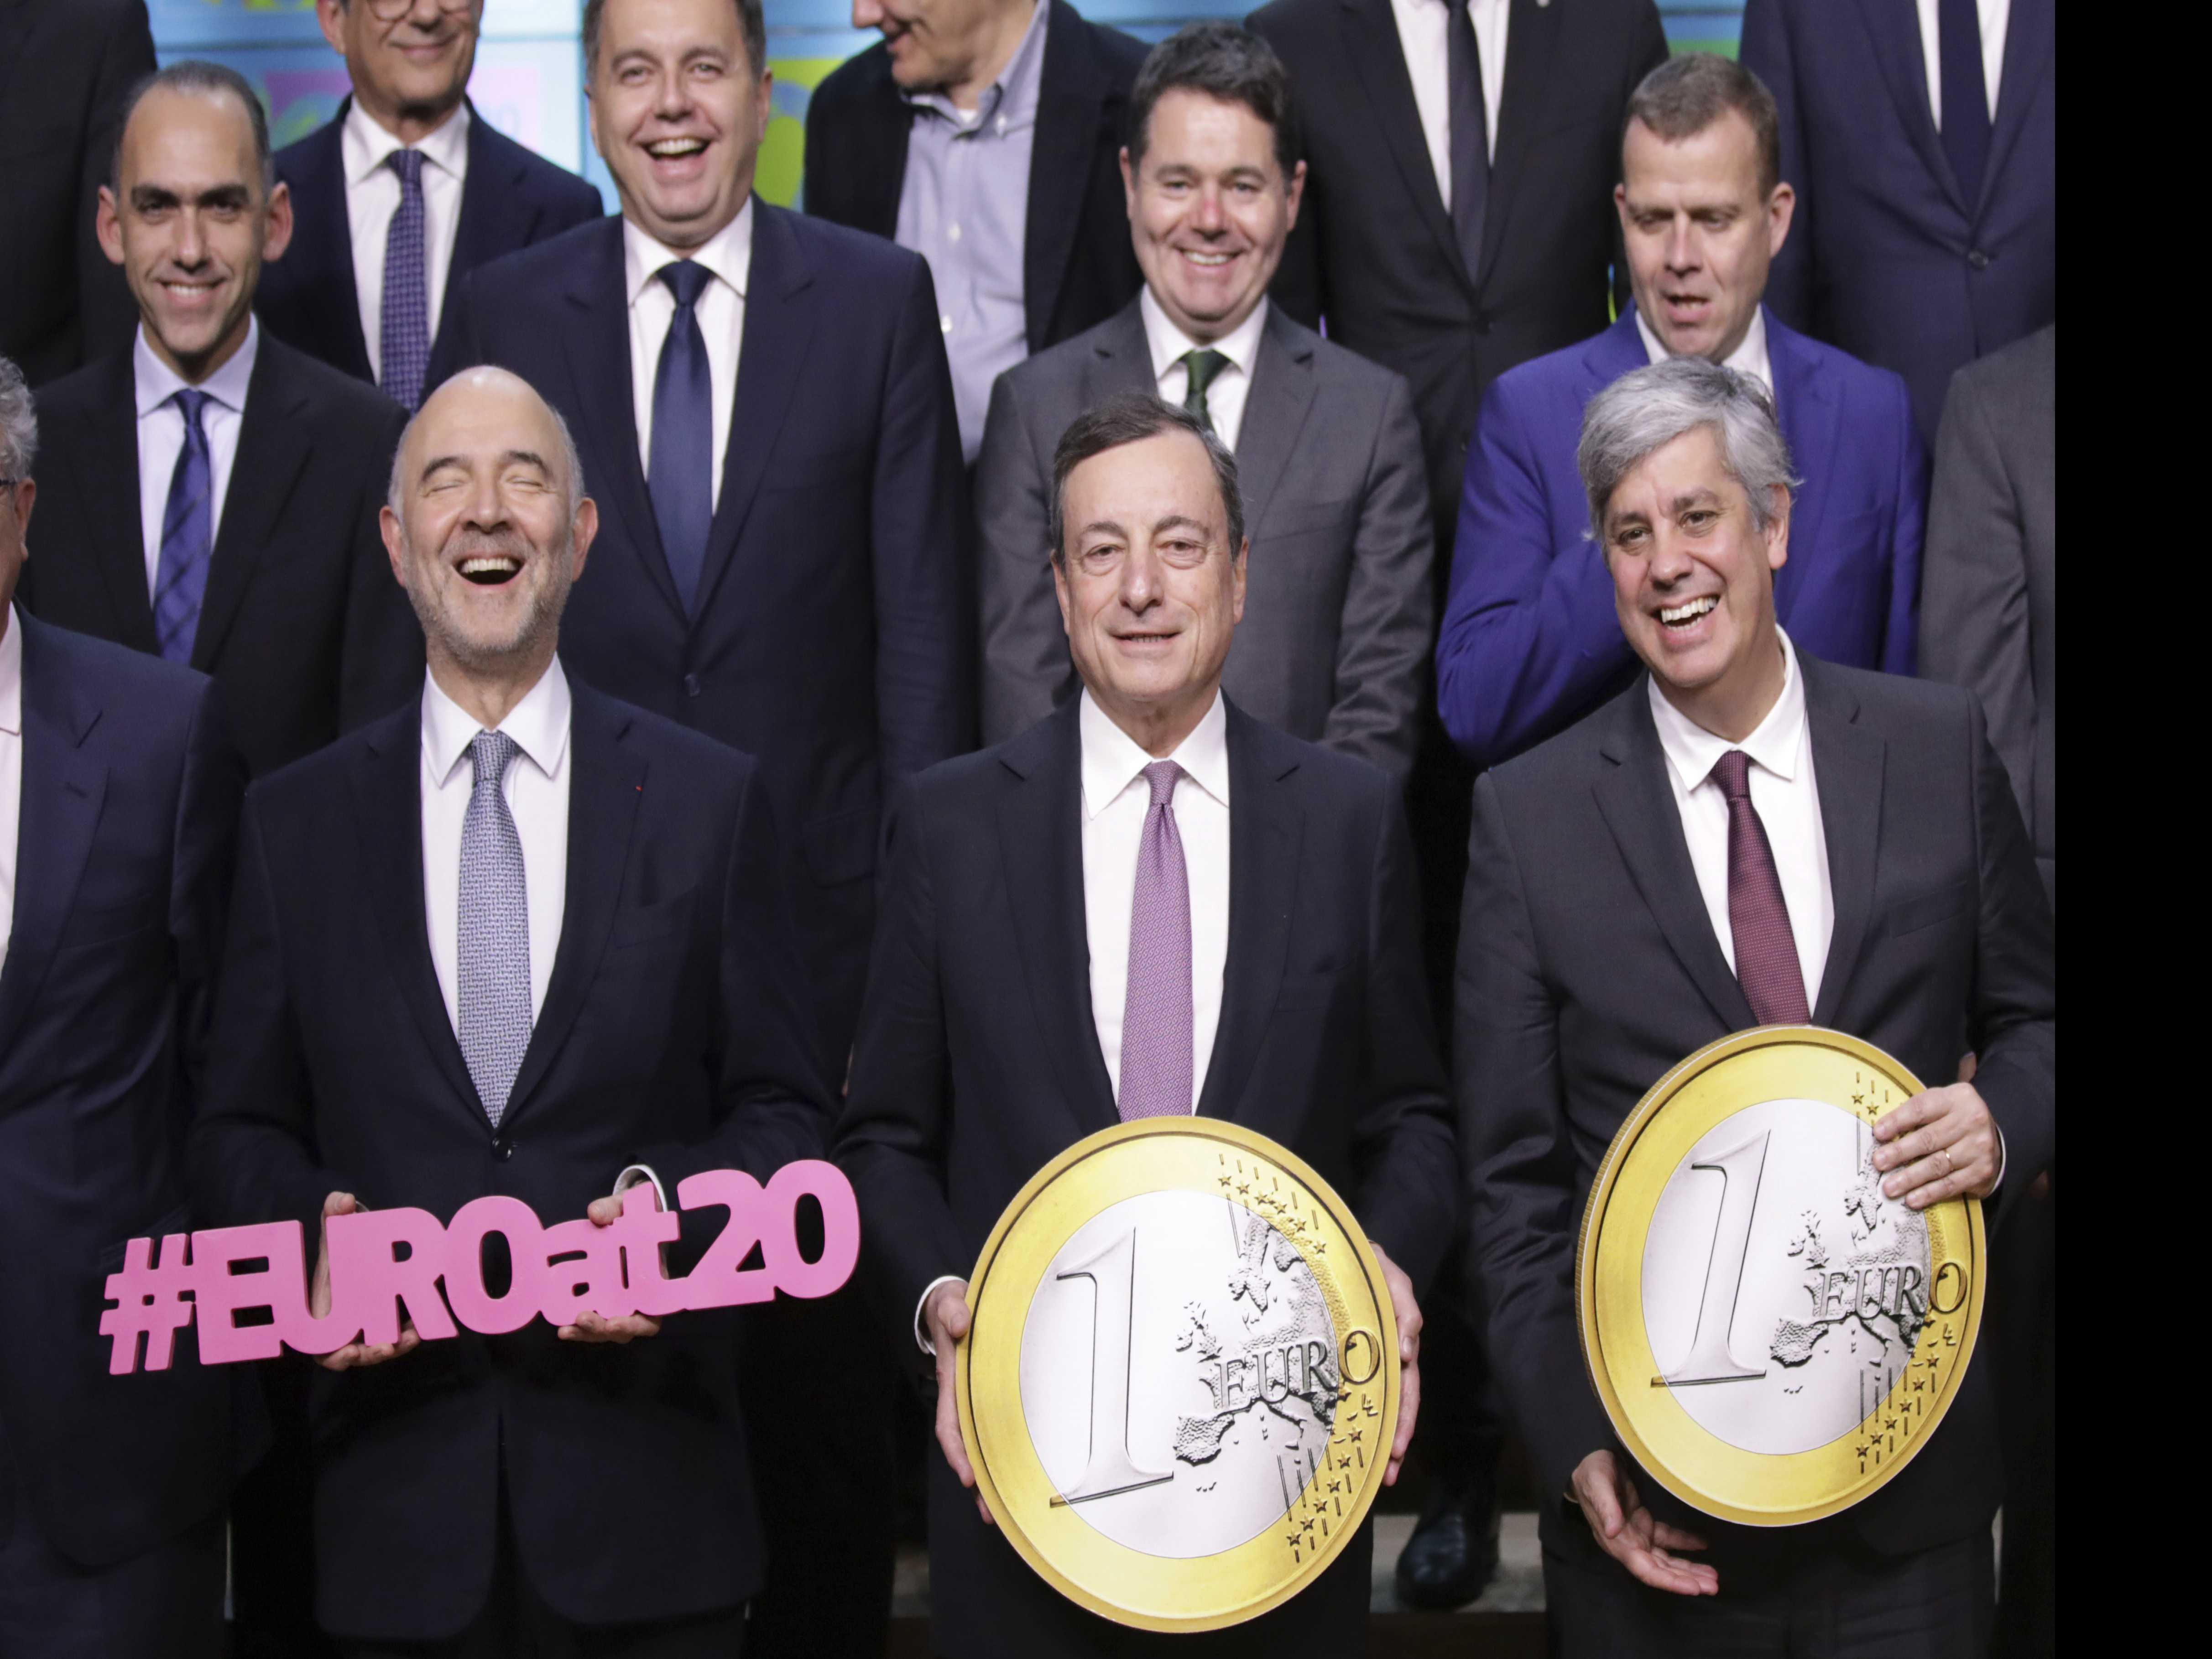 Eurozone Ministers Reach Compromise Deal on Reform Package